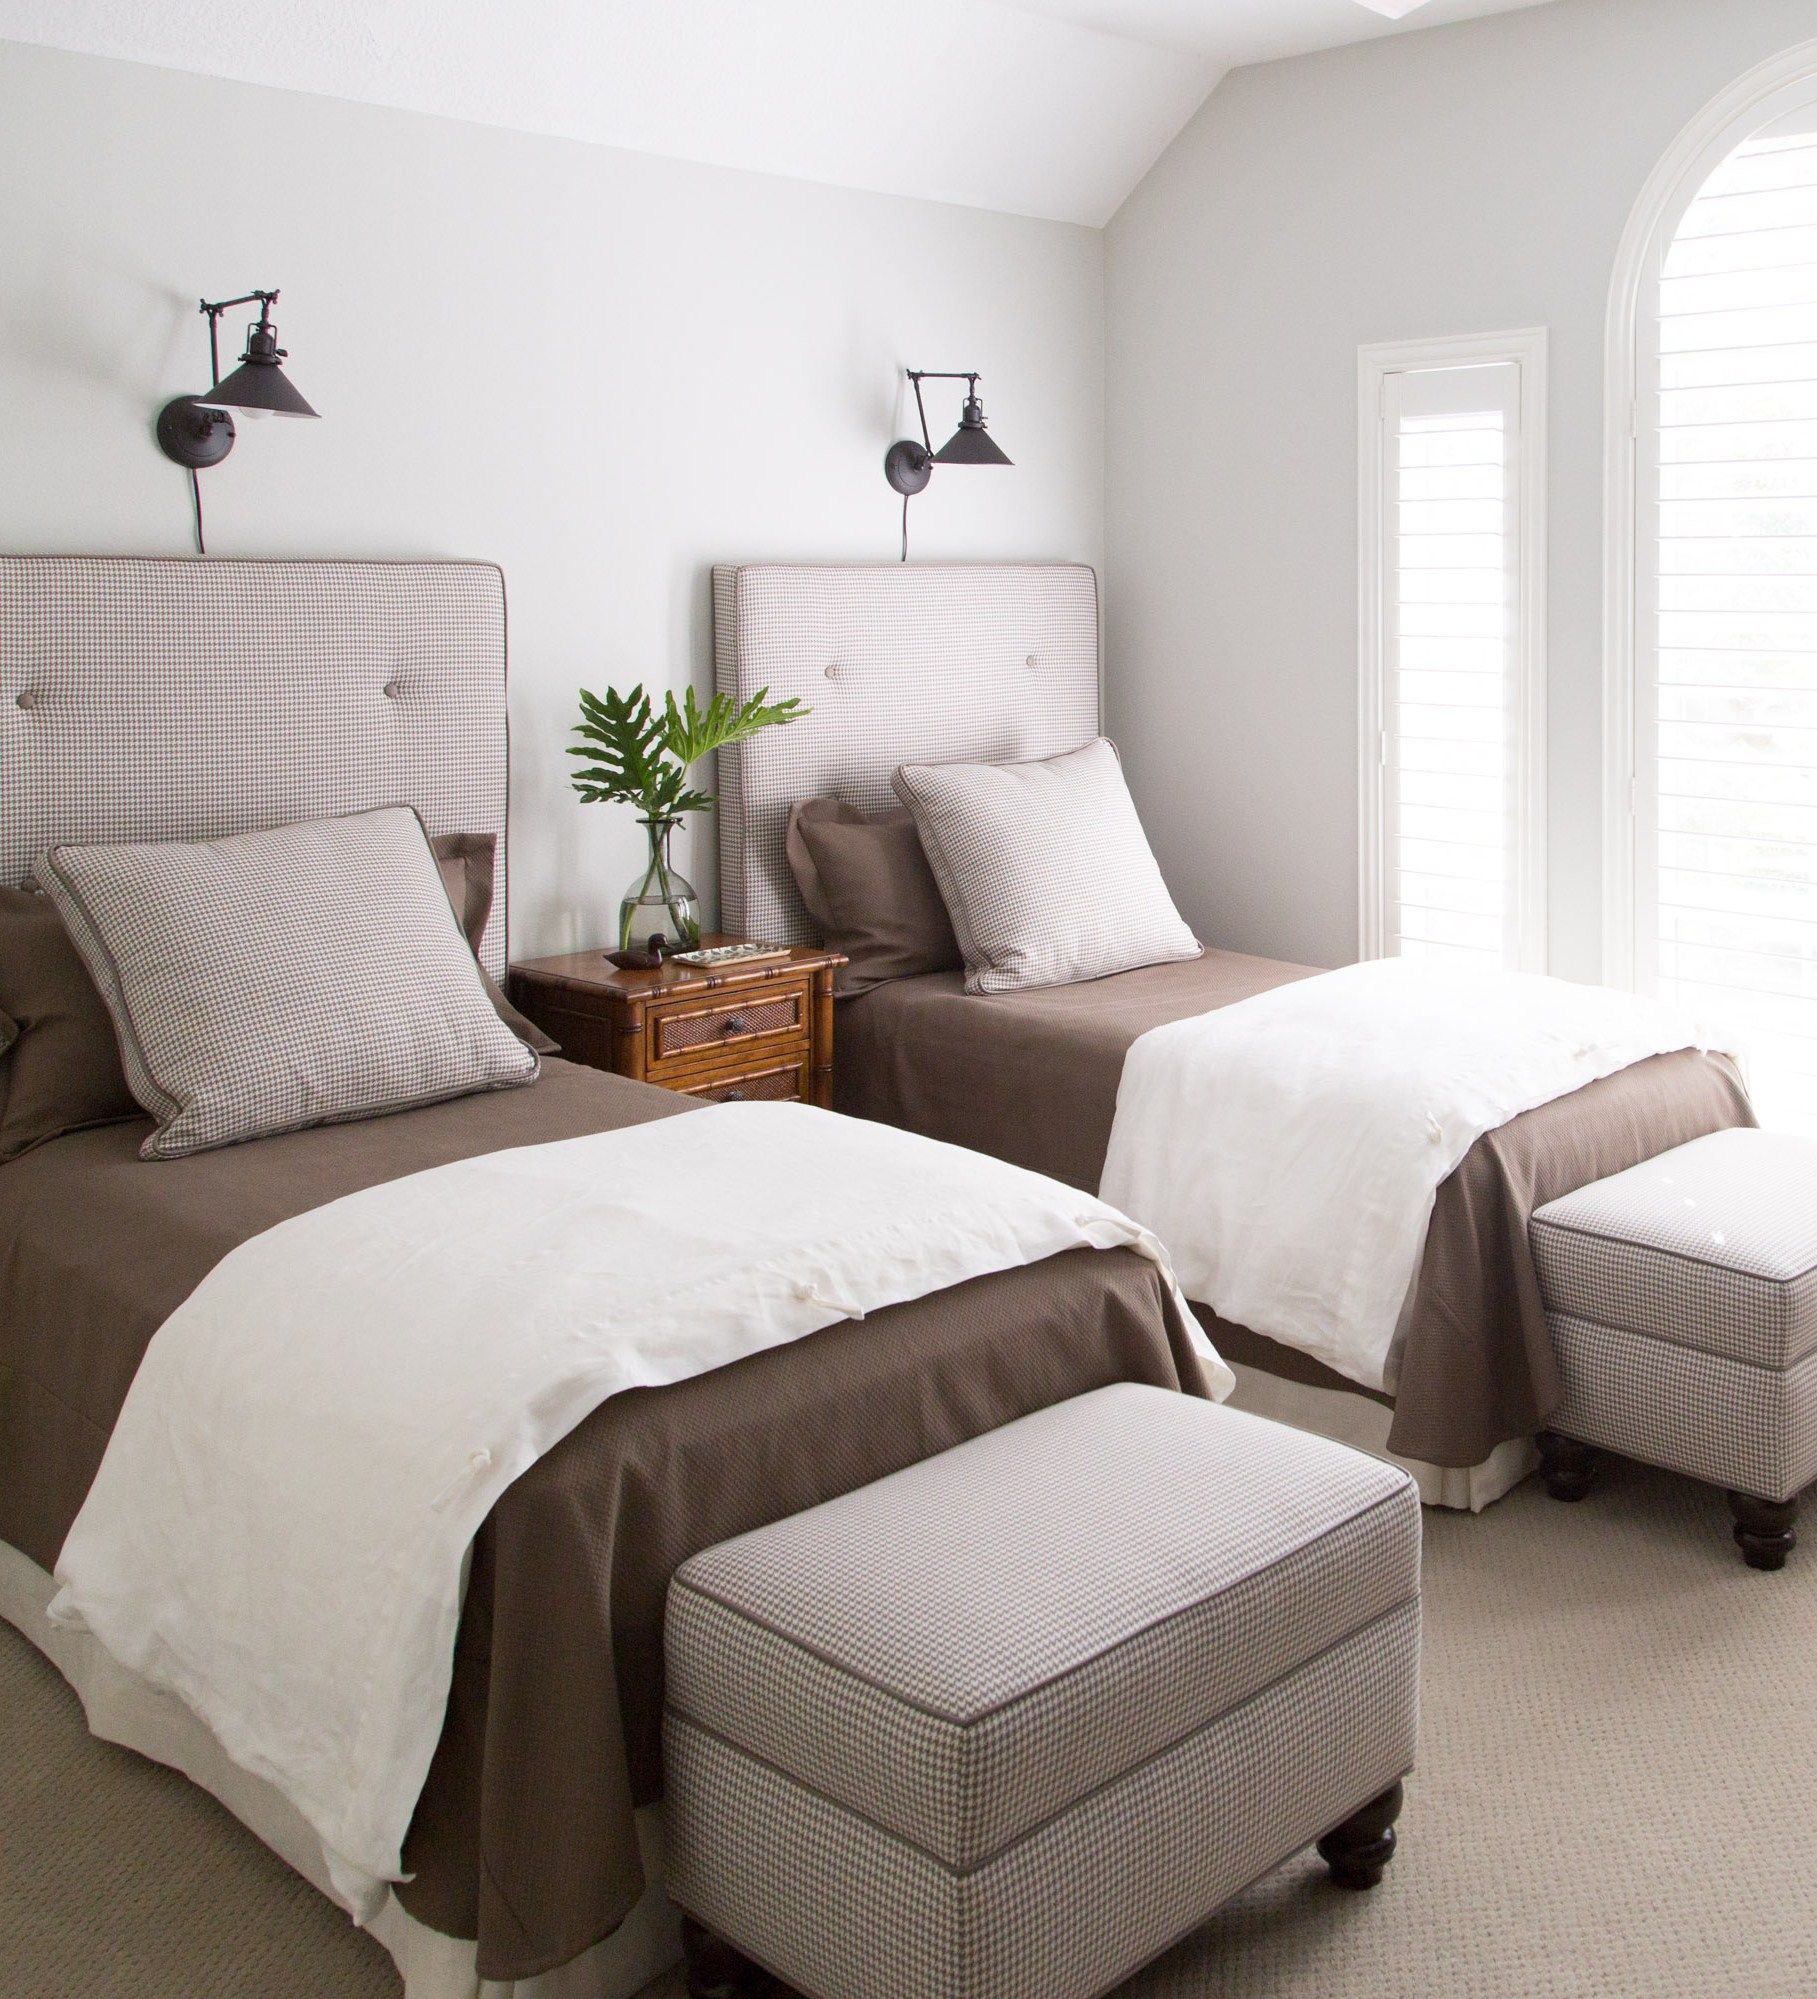 Ottomans For Bedroom Revealed My Sons Bedroom Is Remodeled Into A Comfy Guest Room